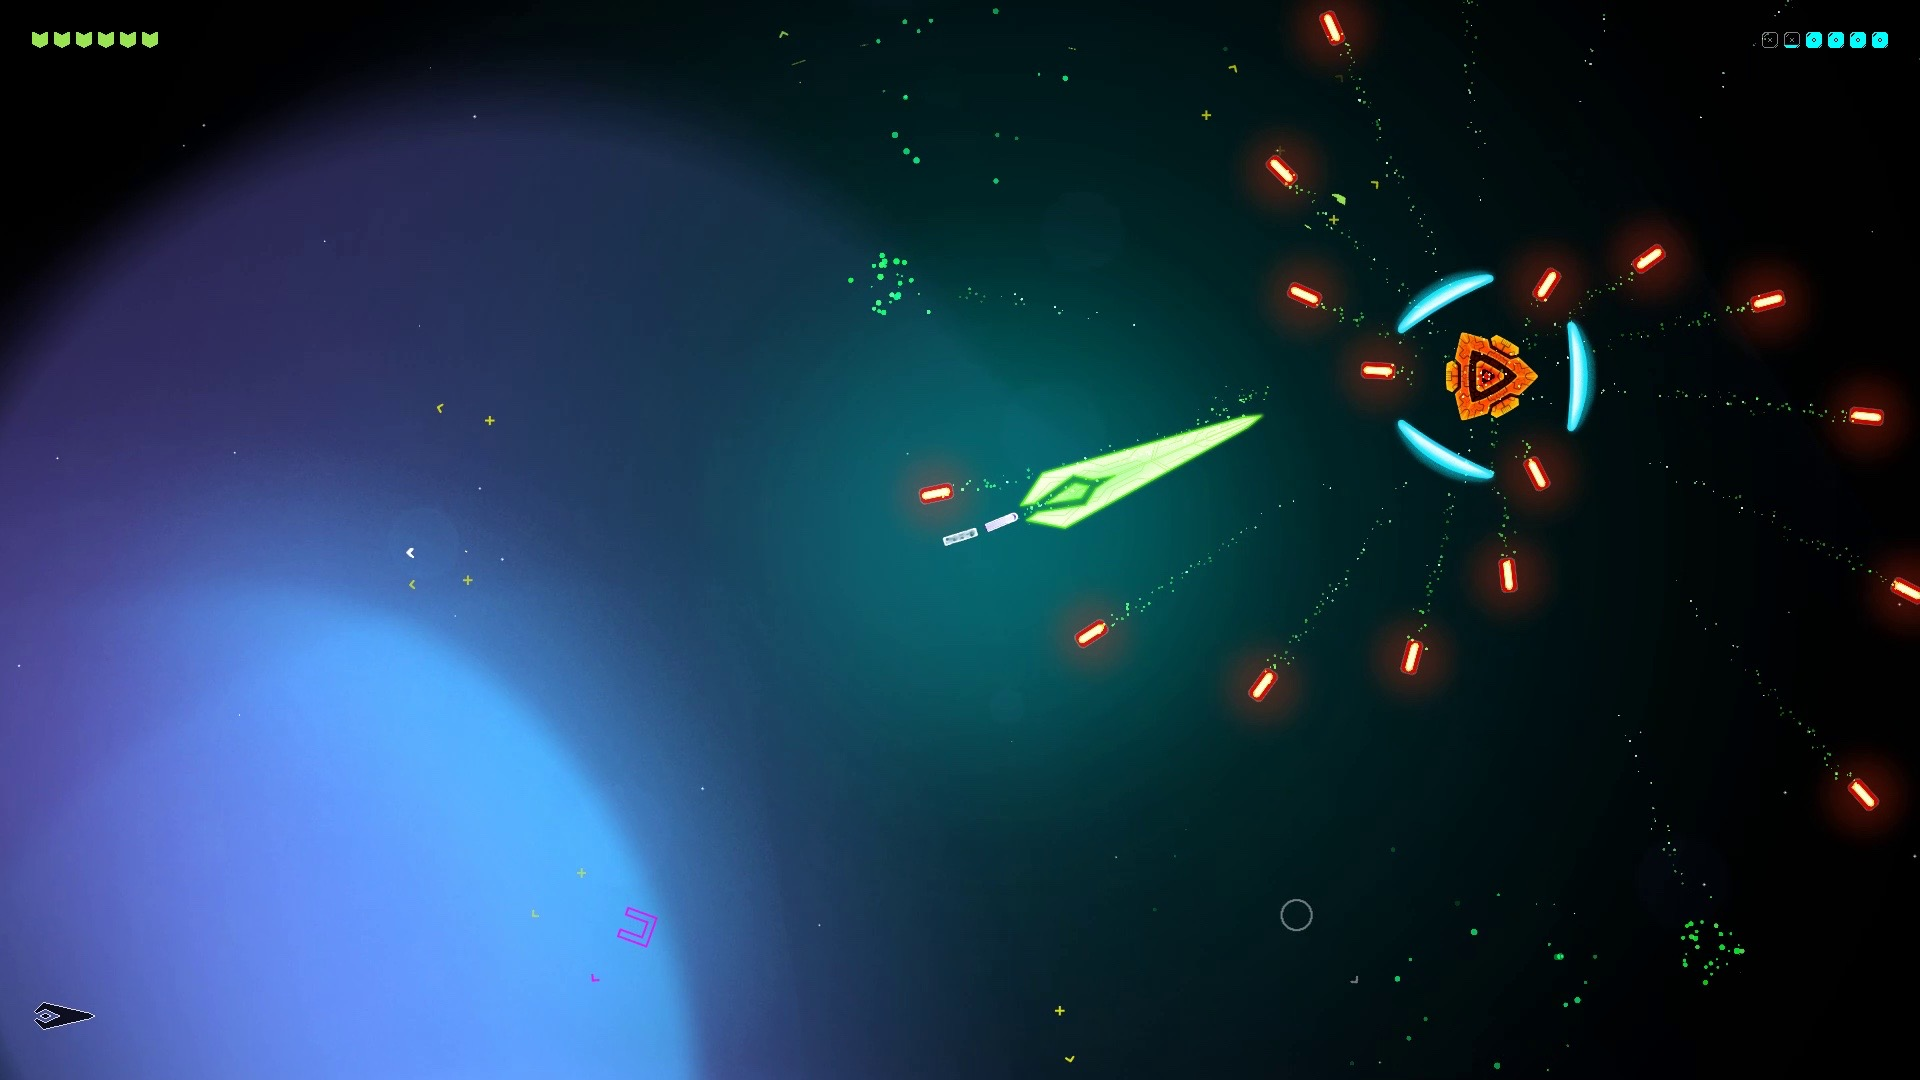 Silly space pirates will be eaten by suns in Pan Galactic Railway screenshot